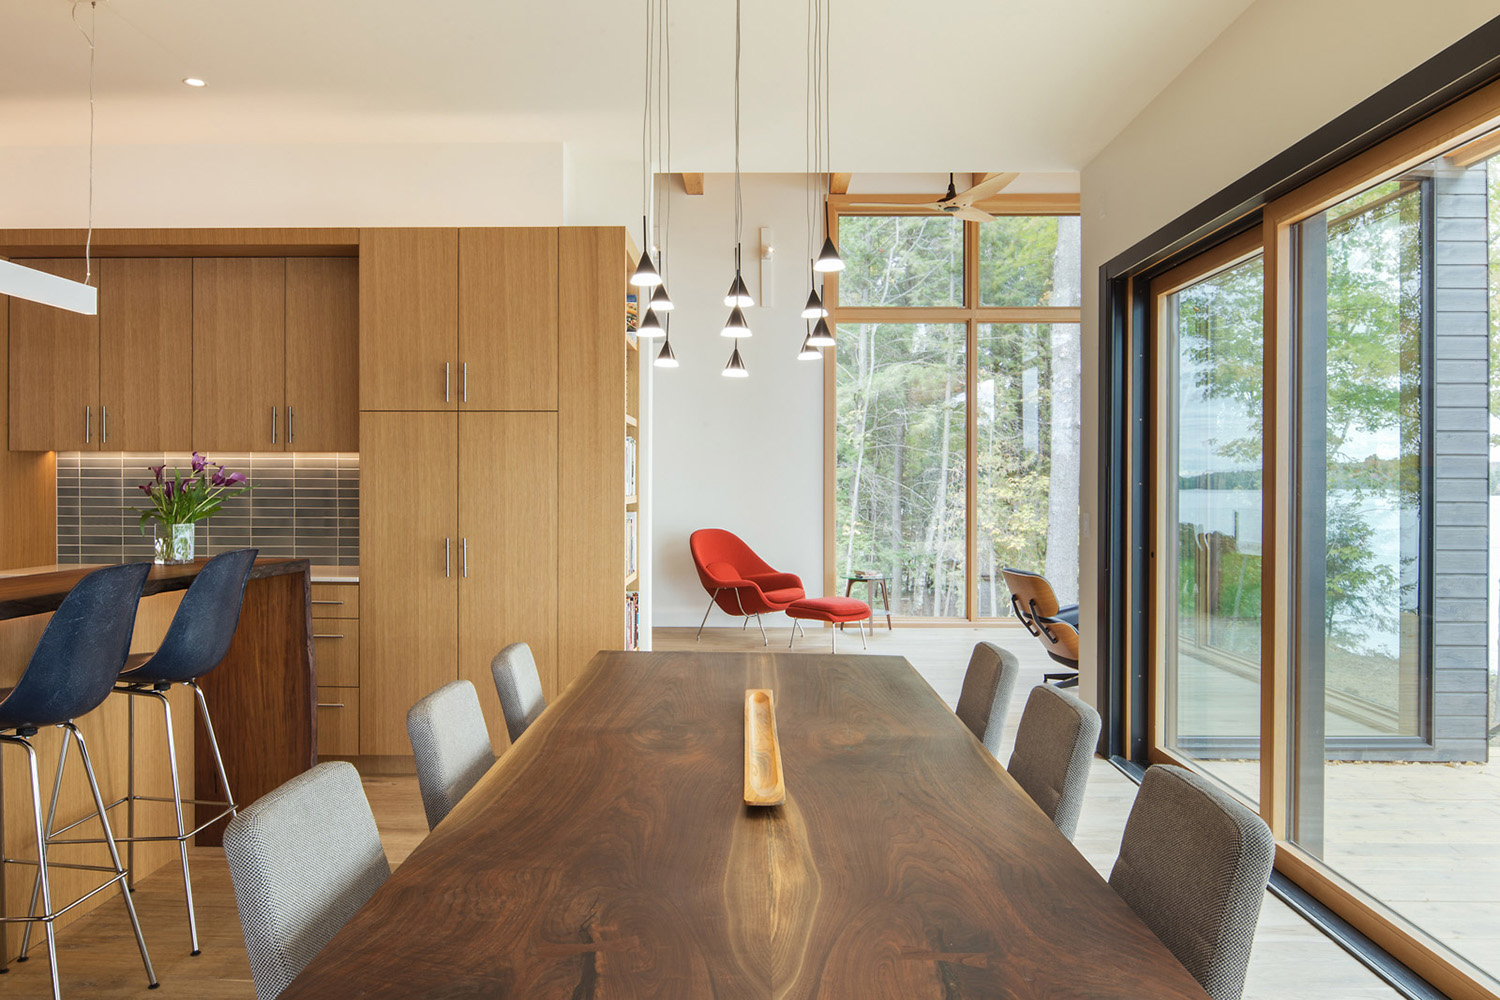 Dining room with large contemporary wood dining room table open to kitchen with pendant lighting